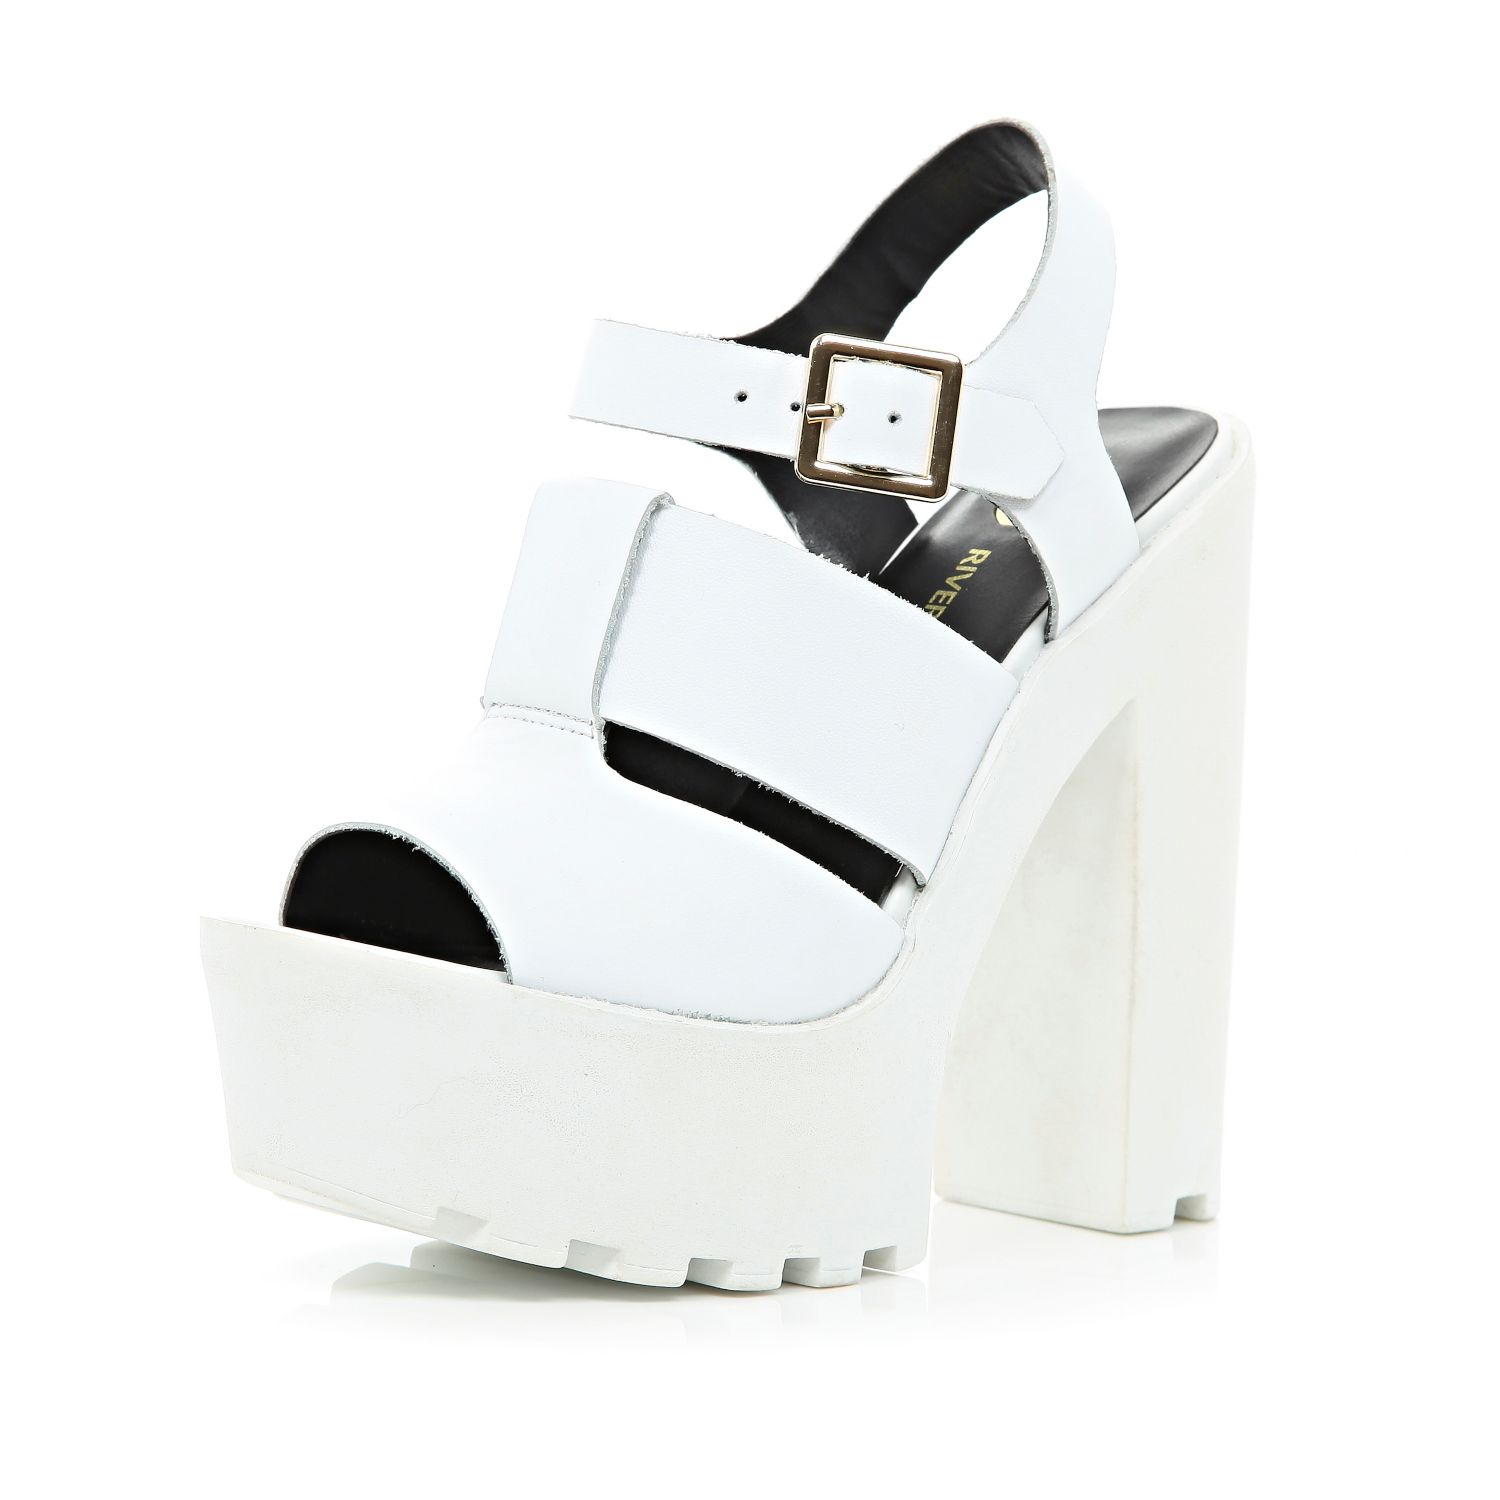 88dac938d74 River Island White Cleated Sole Platform Sandals in White - Lyst